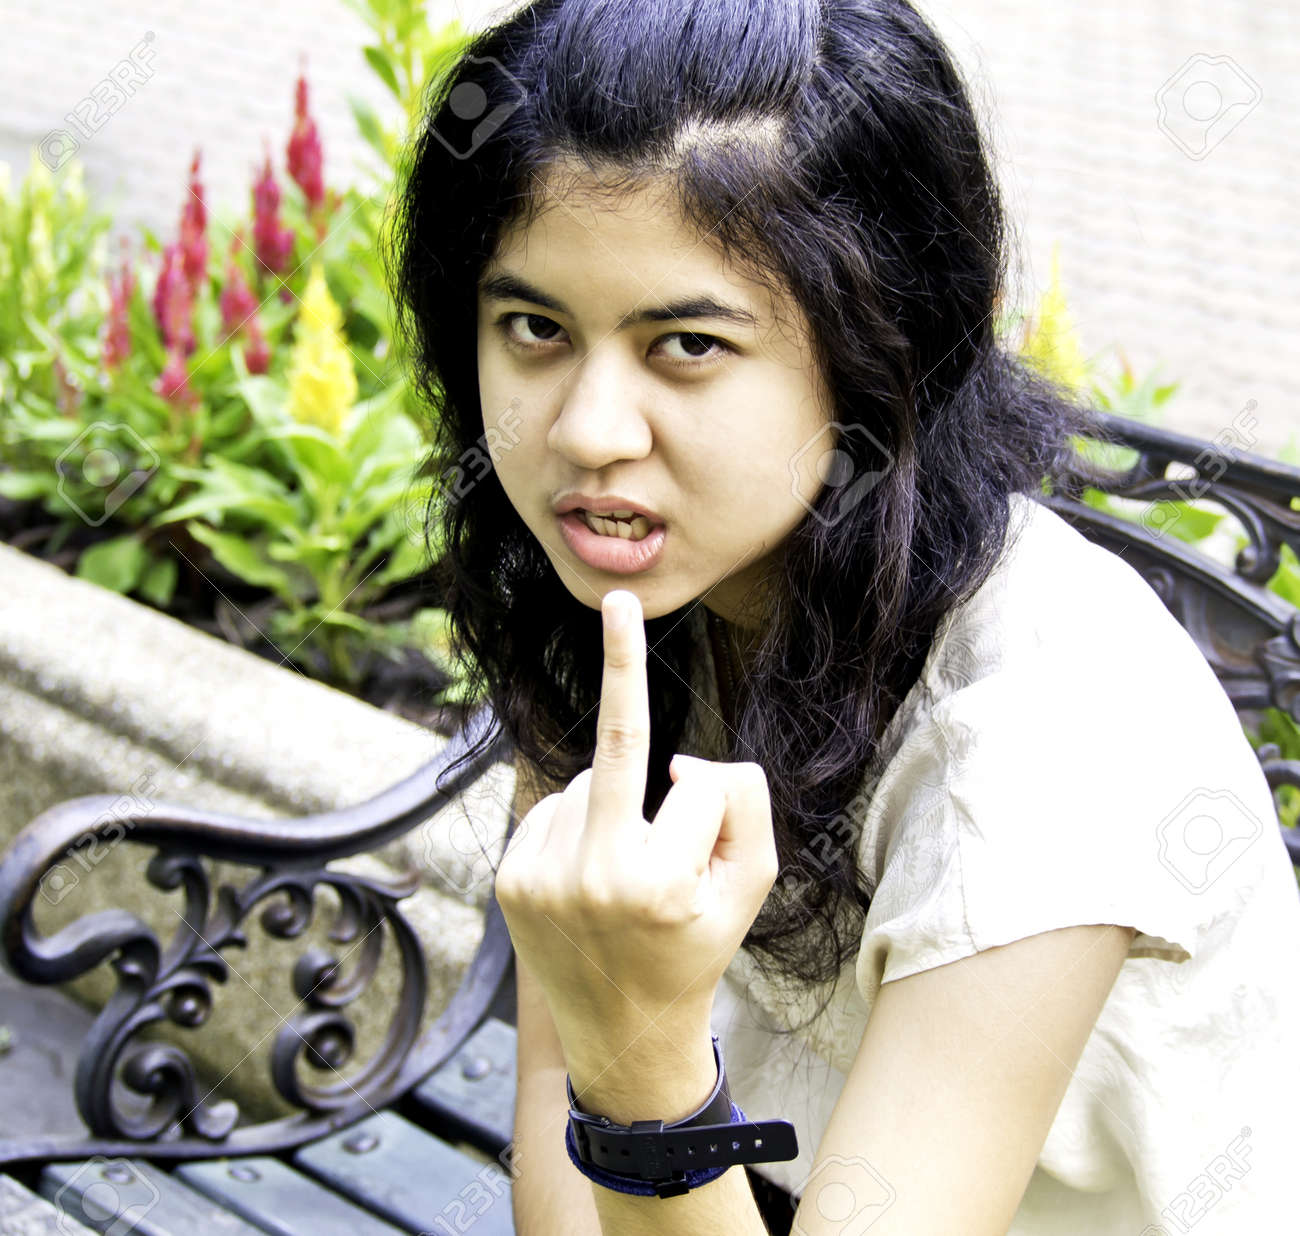 Woman showing middle finger Stock Photo - 15560854